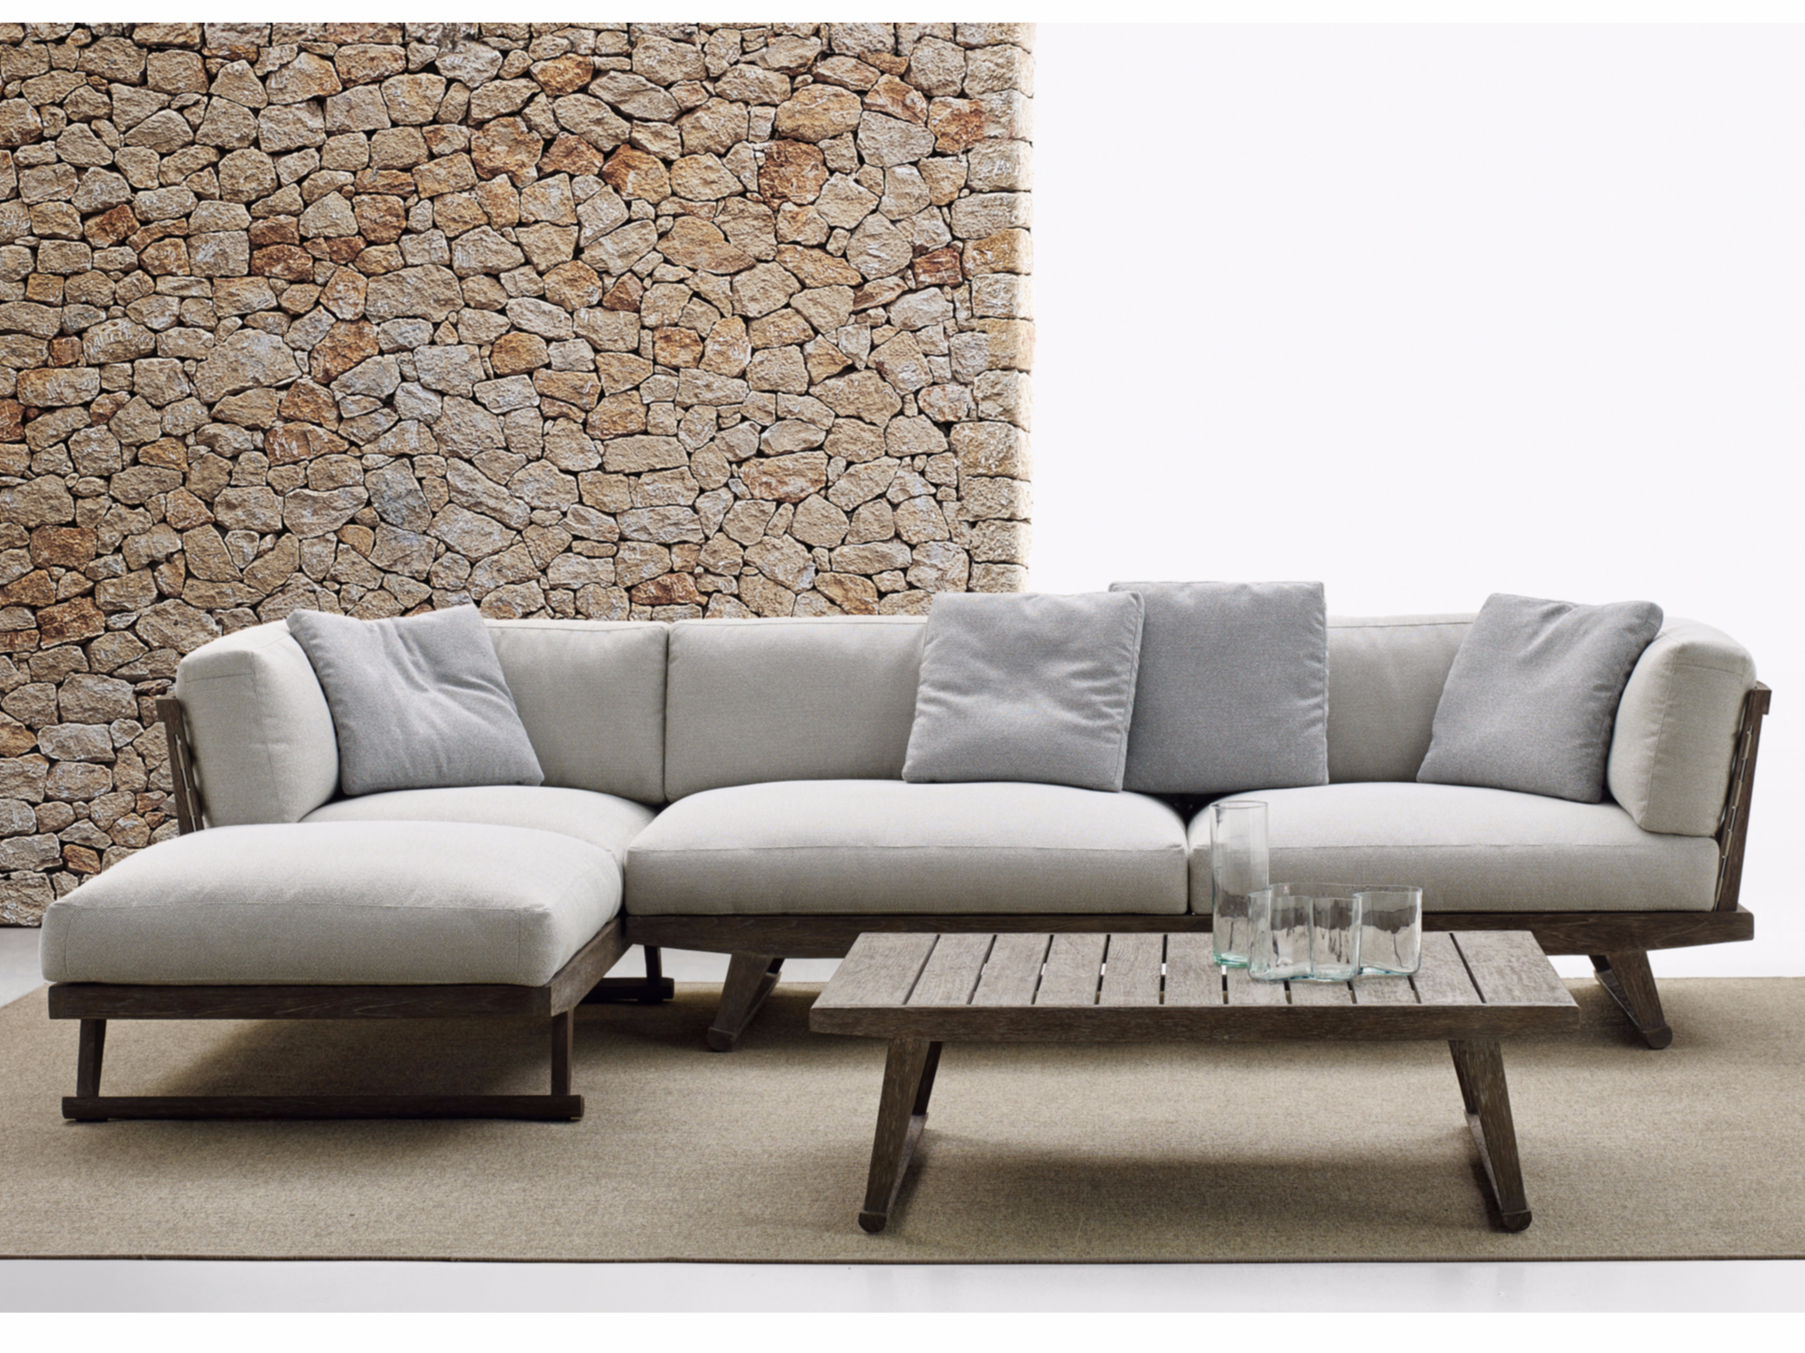 Gio sofa with chaise longue gio collection by b b italia for Sofas chaise longue ofertas